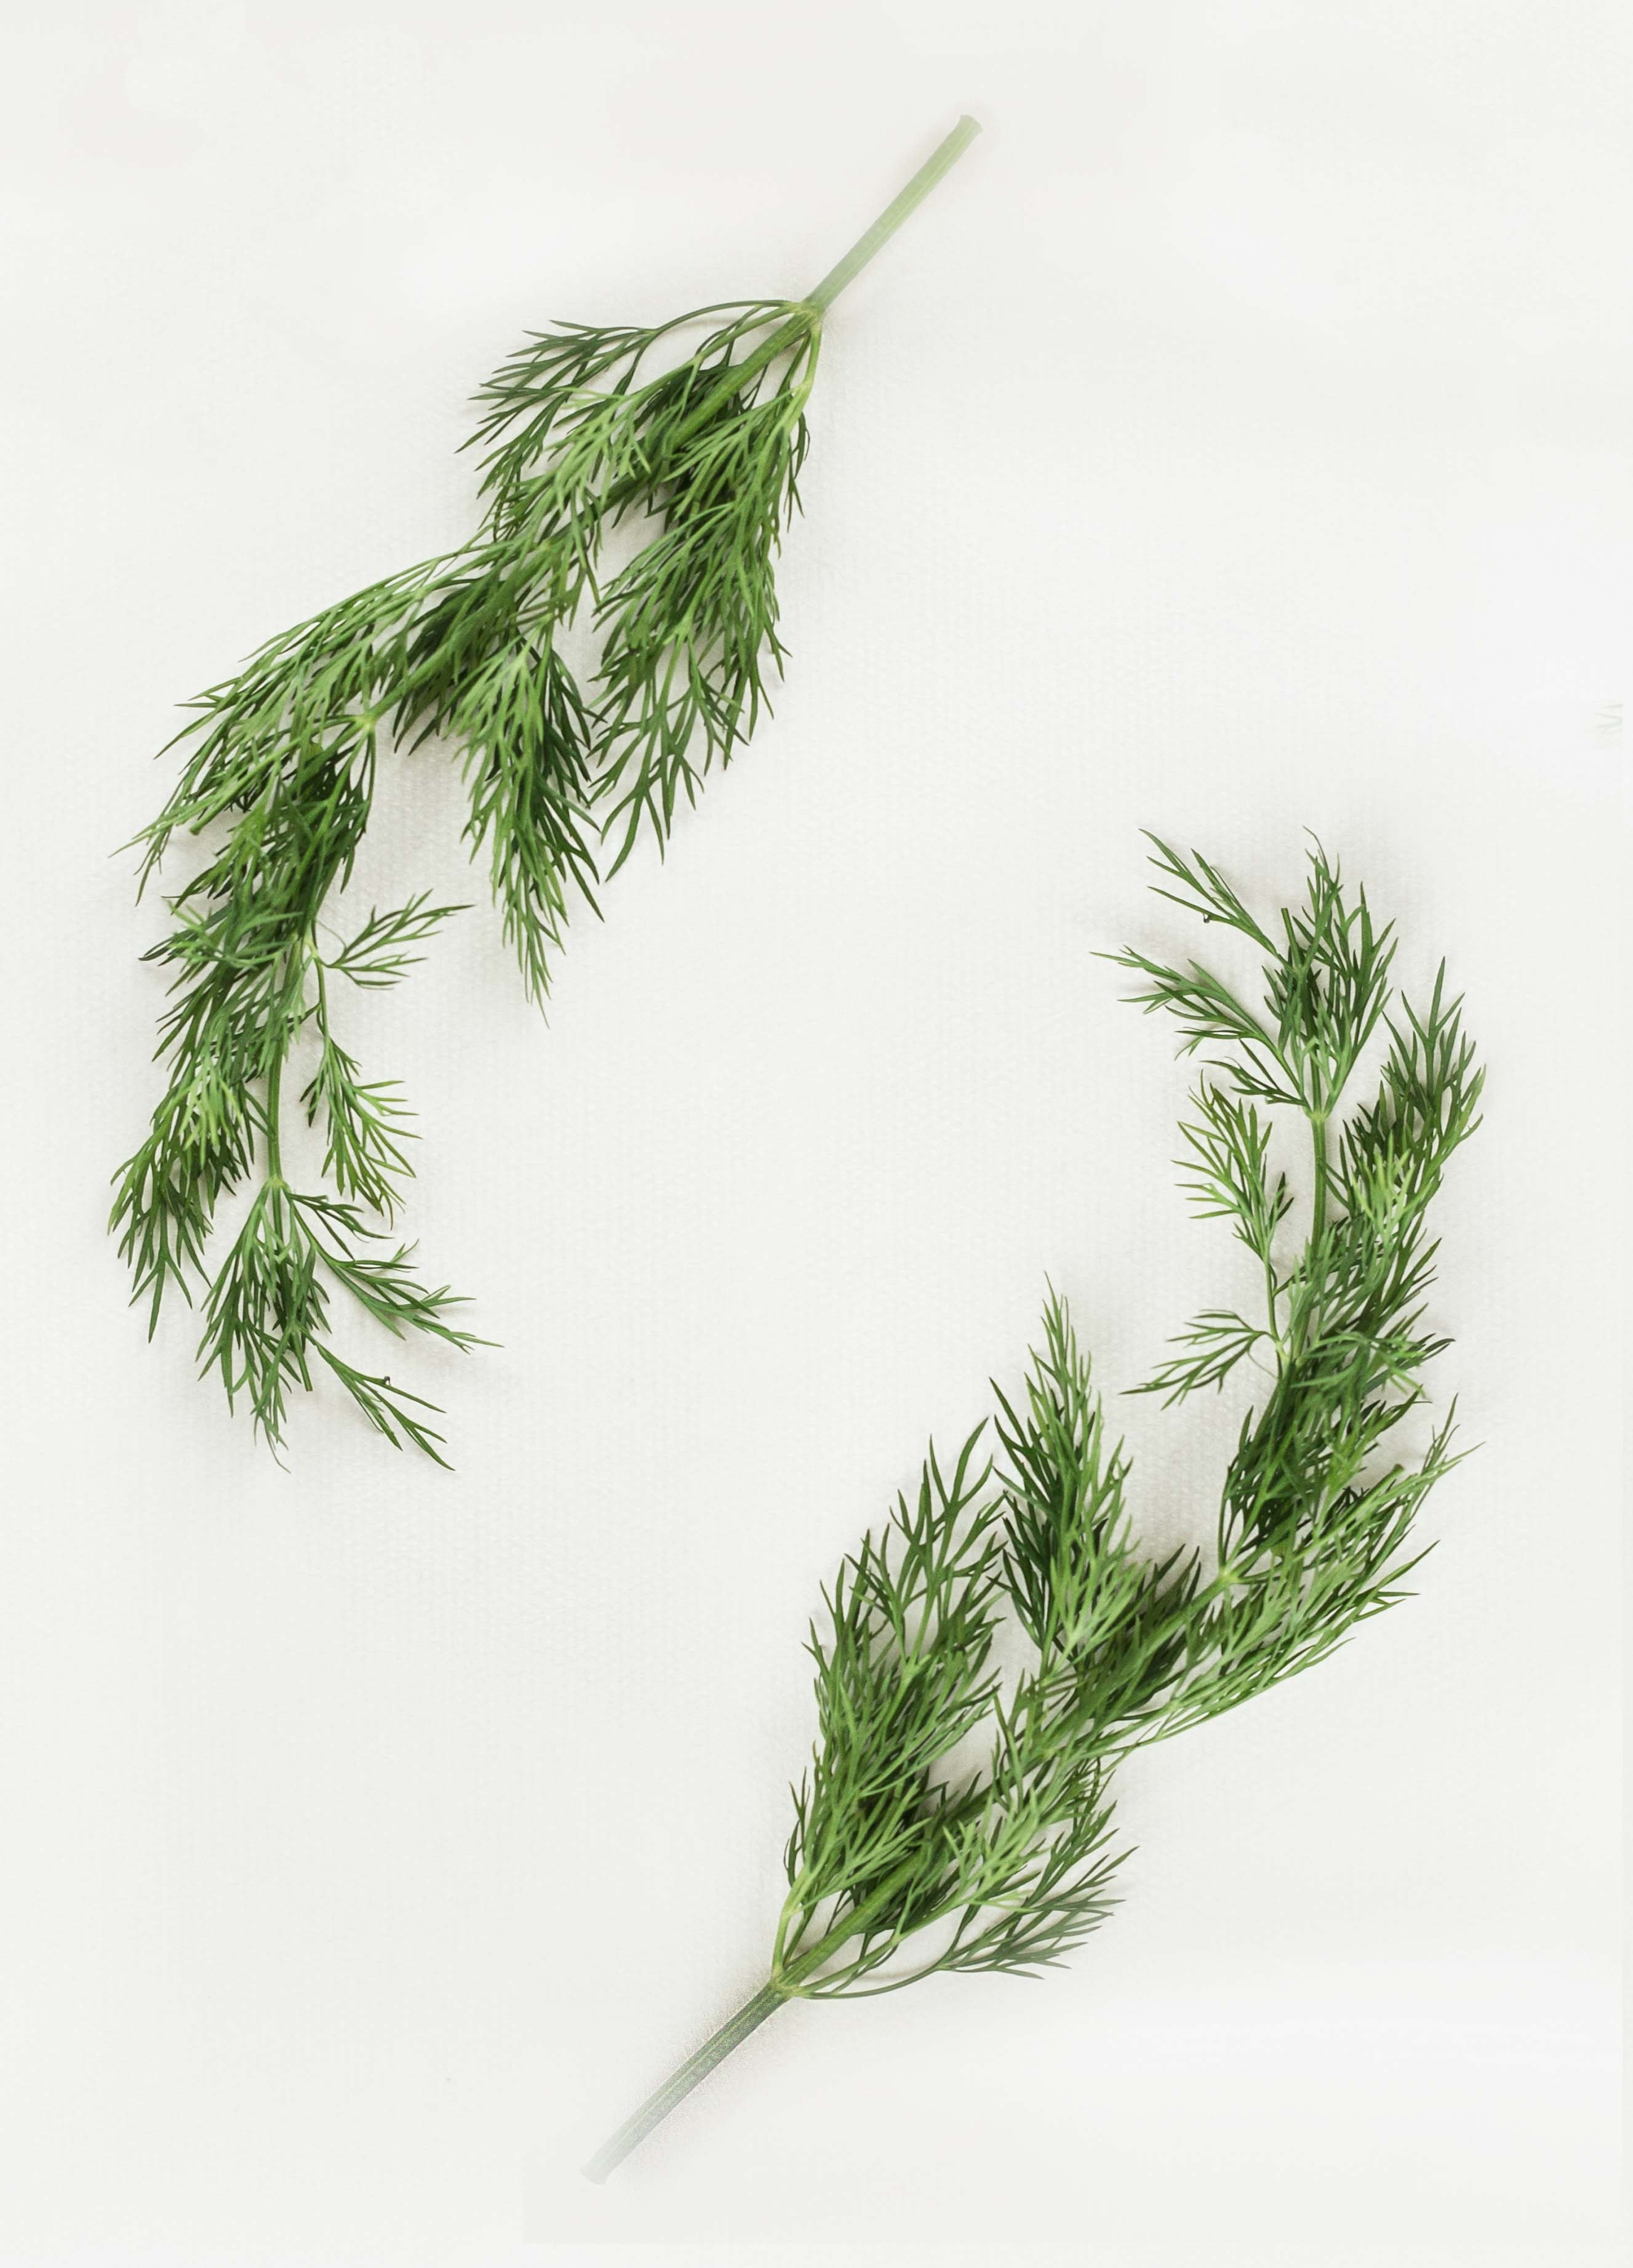 green leafed plants on white background